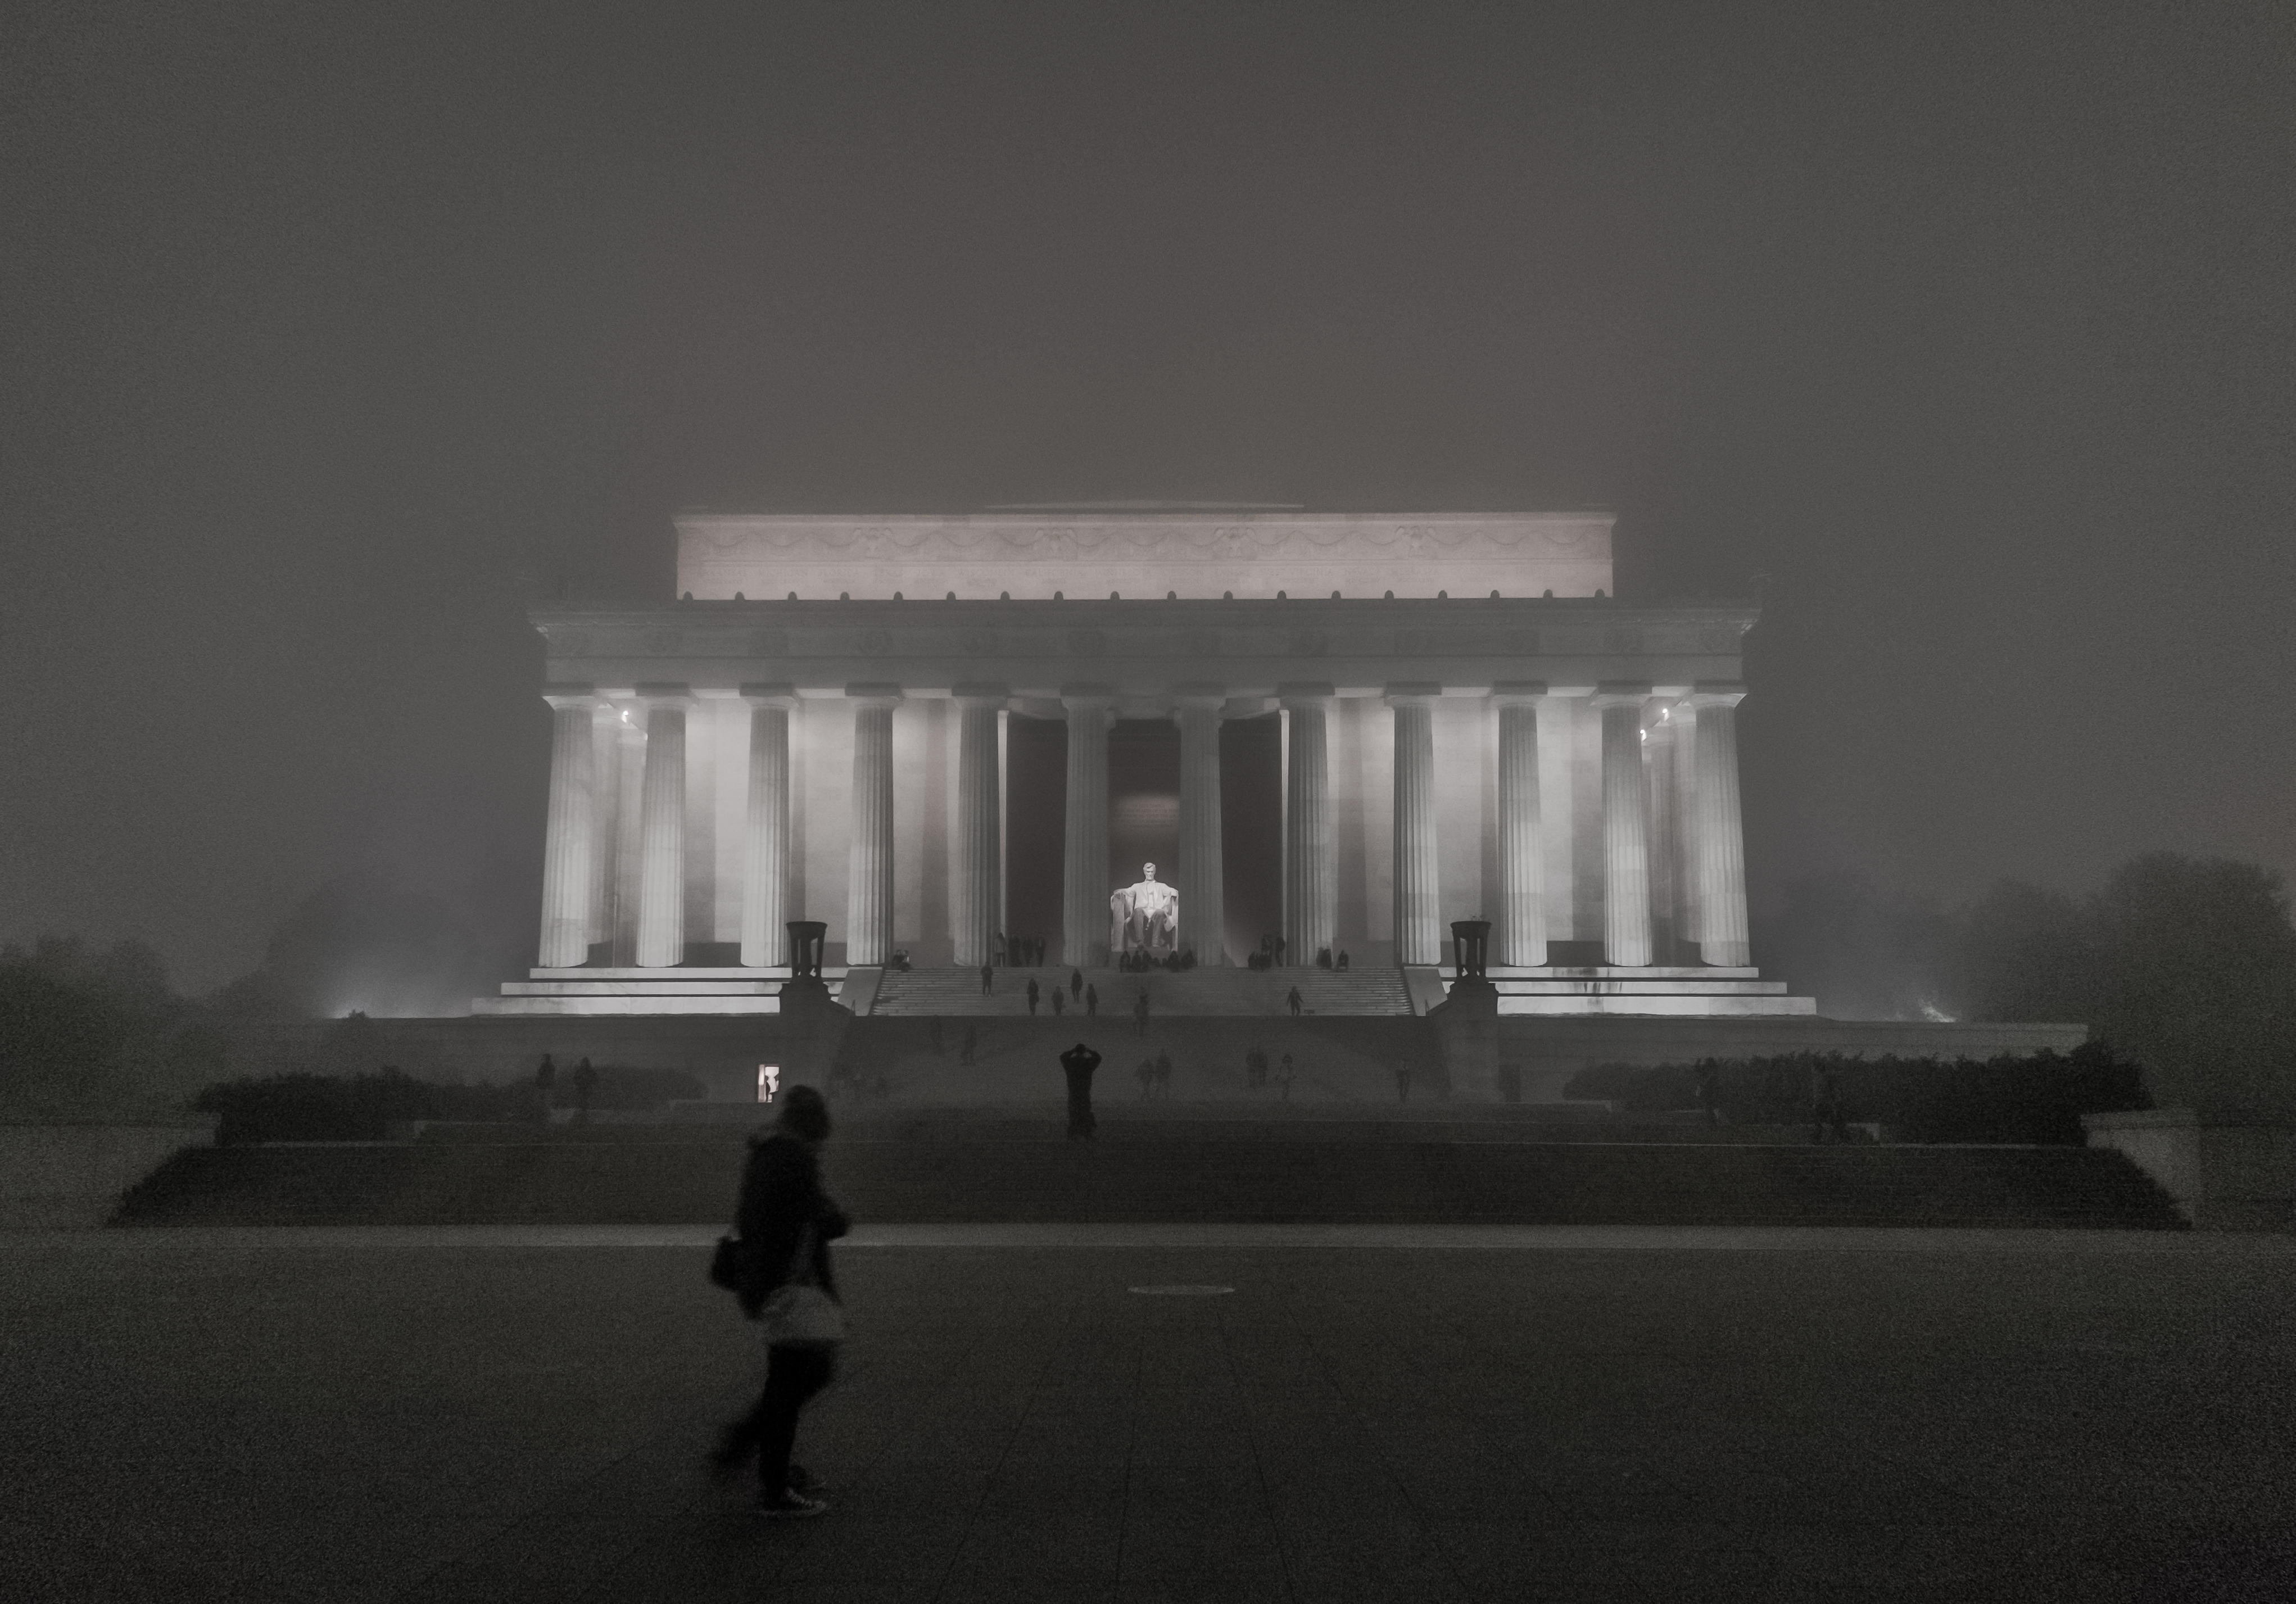 February 2013 Mou Onekorea Circuit Board Birthday Cake Flickr Photo Sharing The Lincoln Memorial On A Foggy Evening January 12 Credit Ehpien